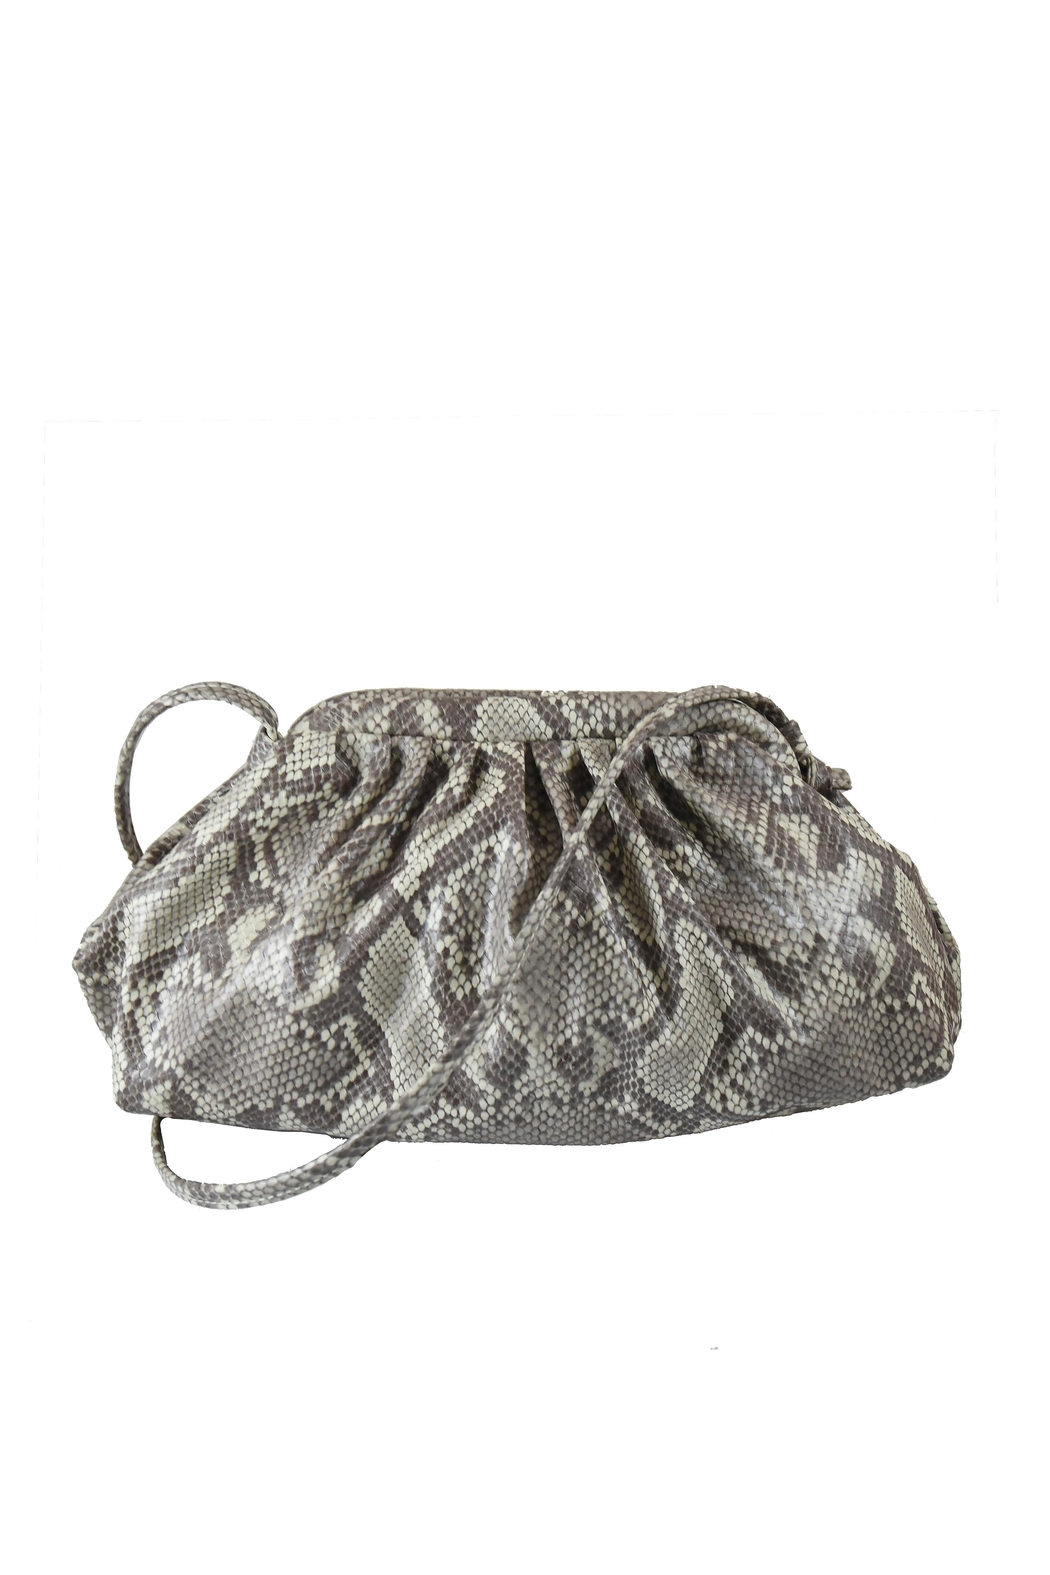 INZI Animal Print Crossbody - Main Image